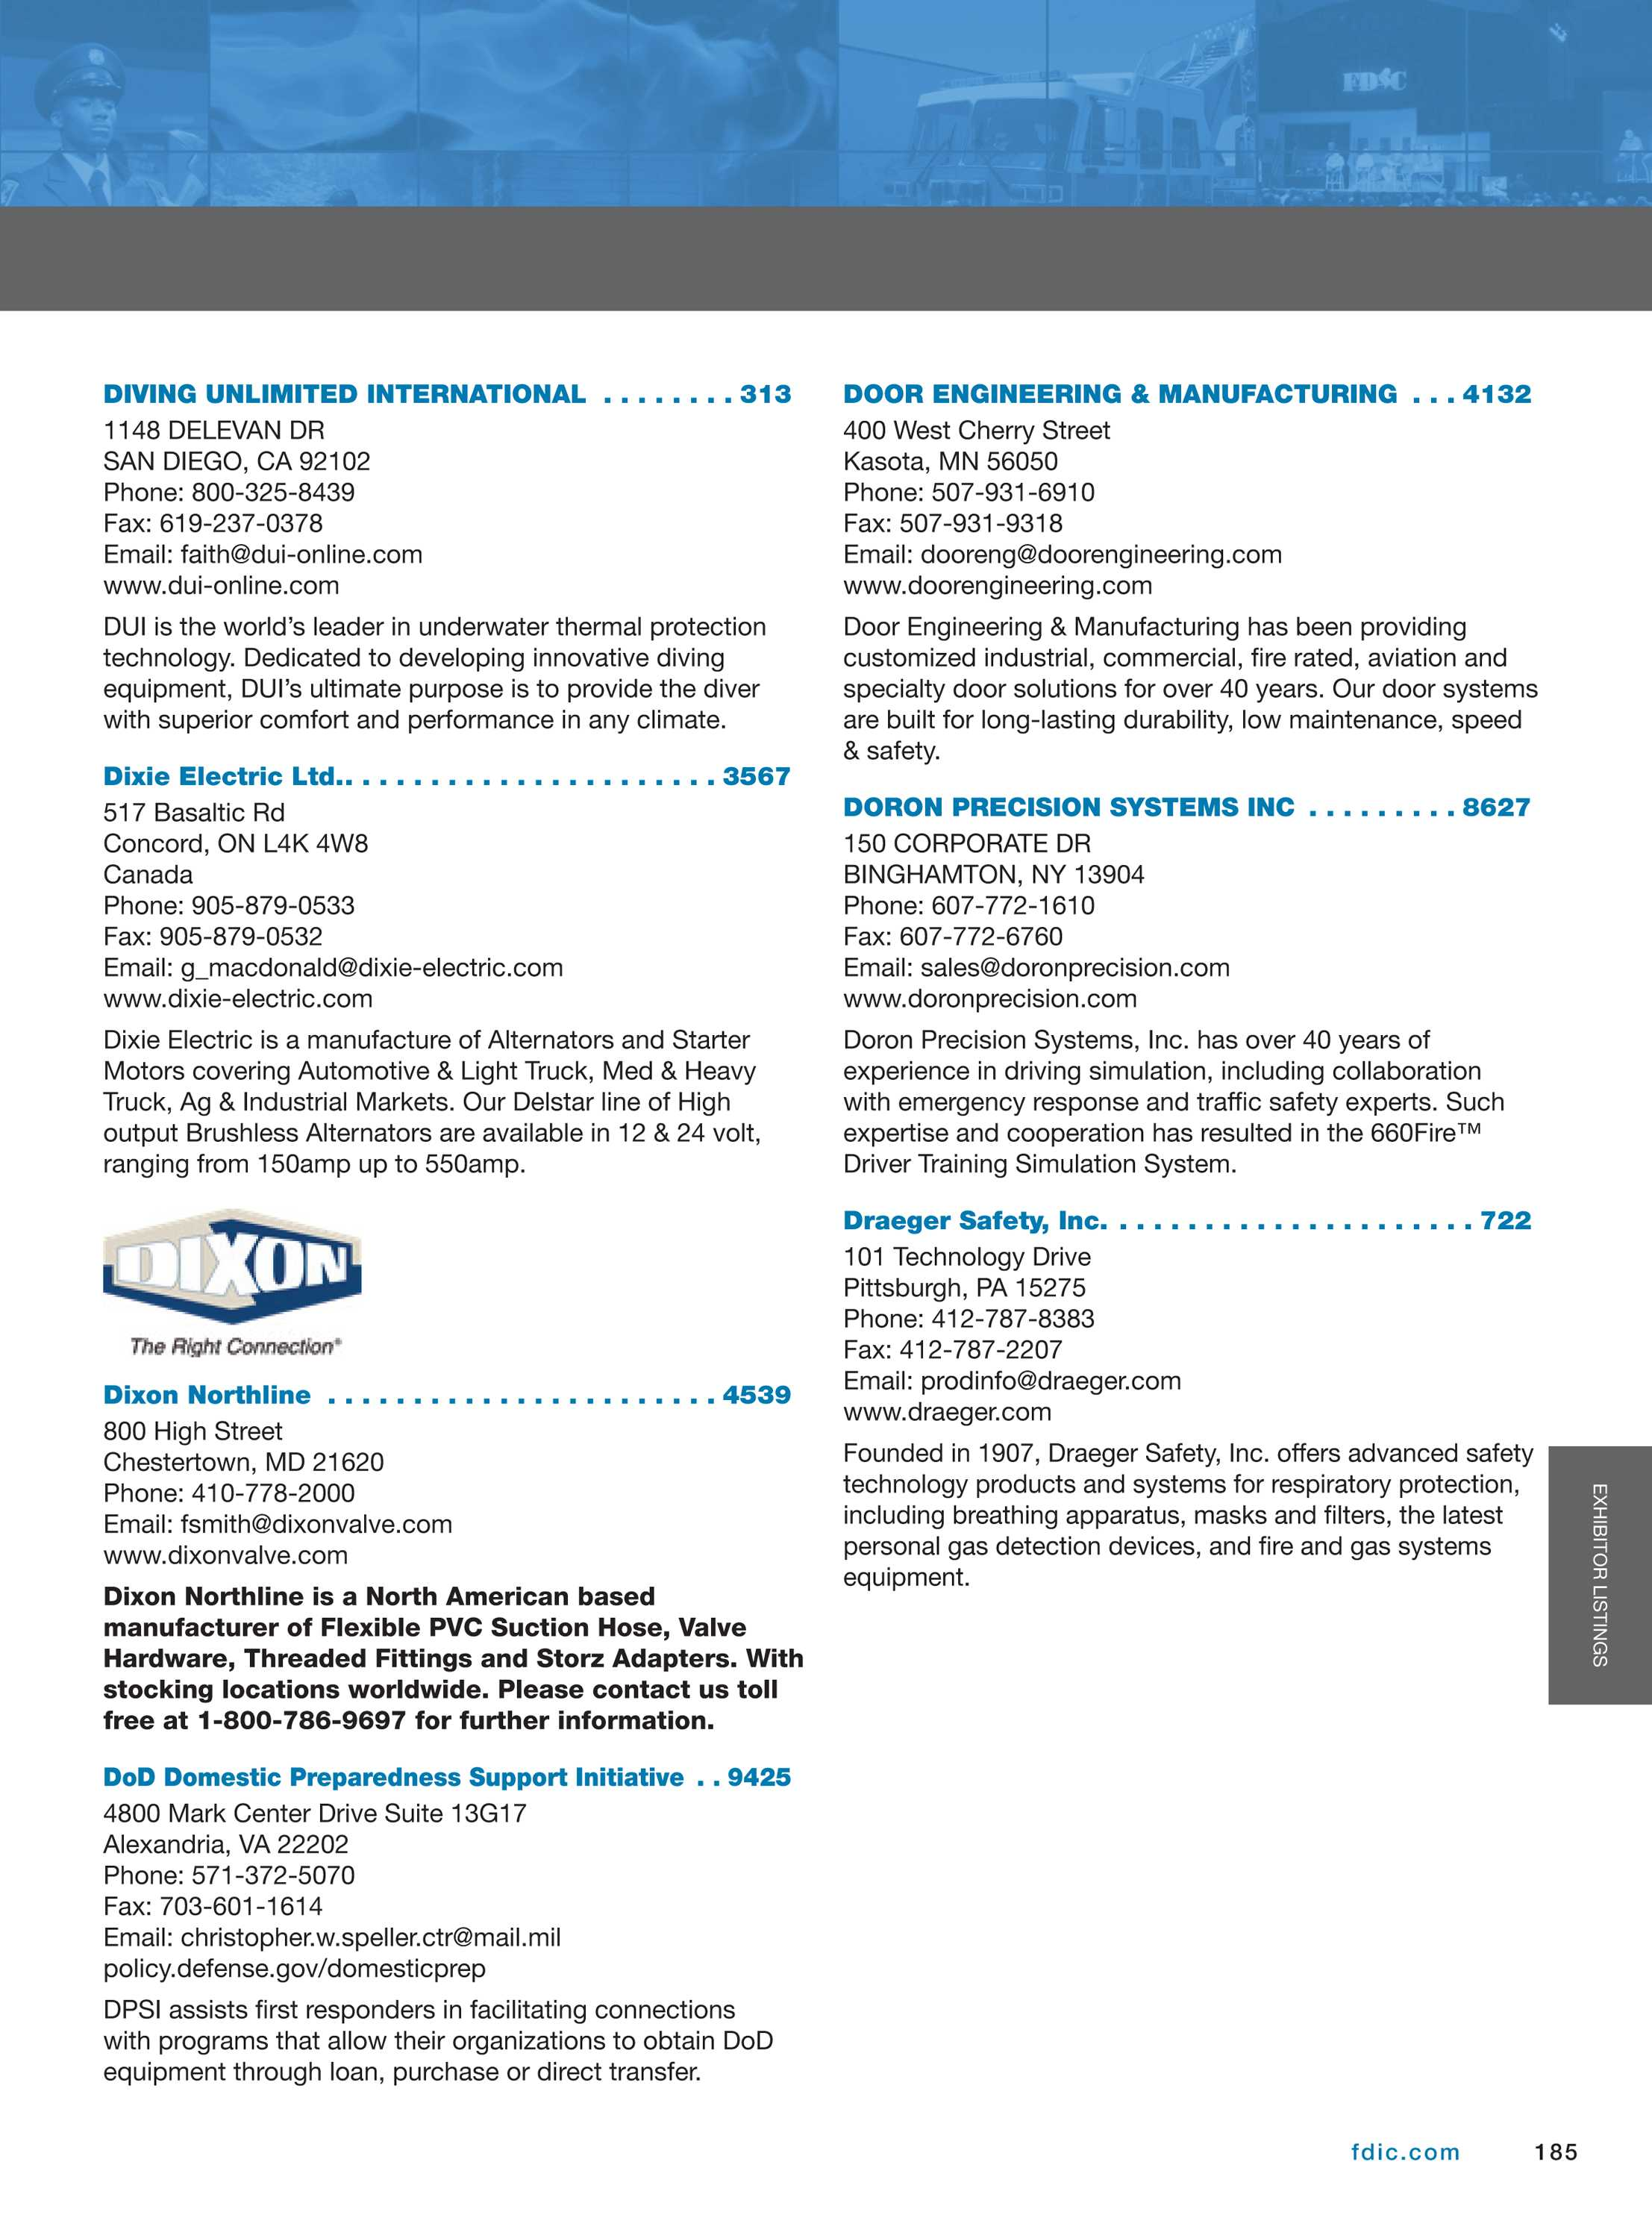 Pennwell Supplements - FDIC 2014 Show Guide - page 185